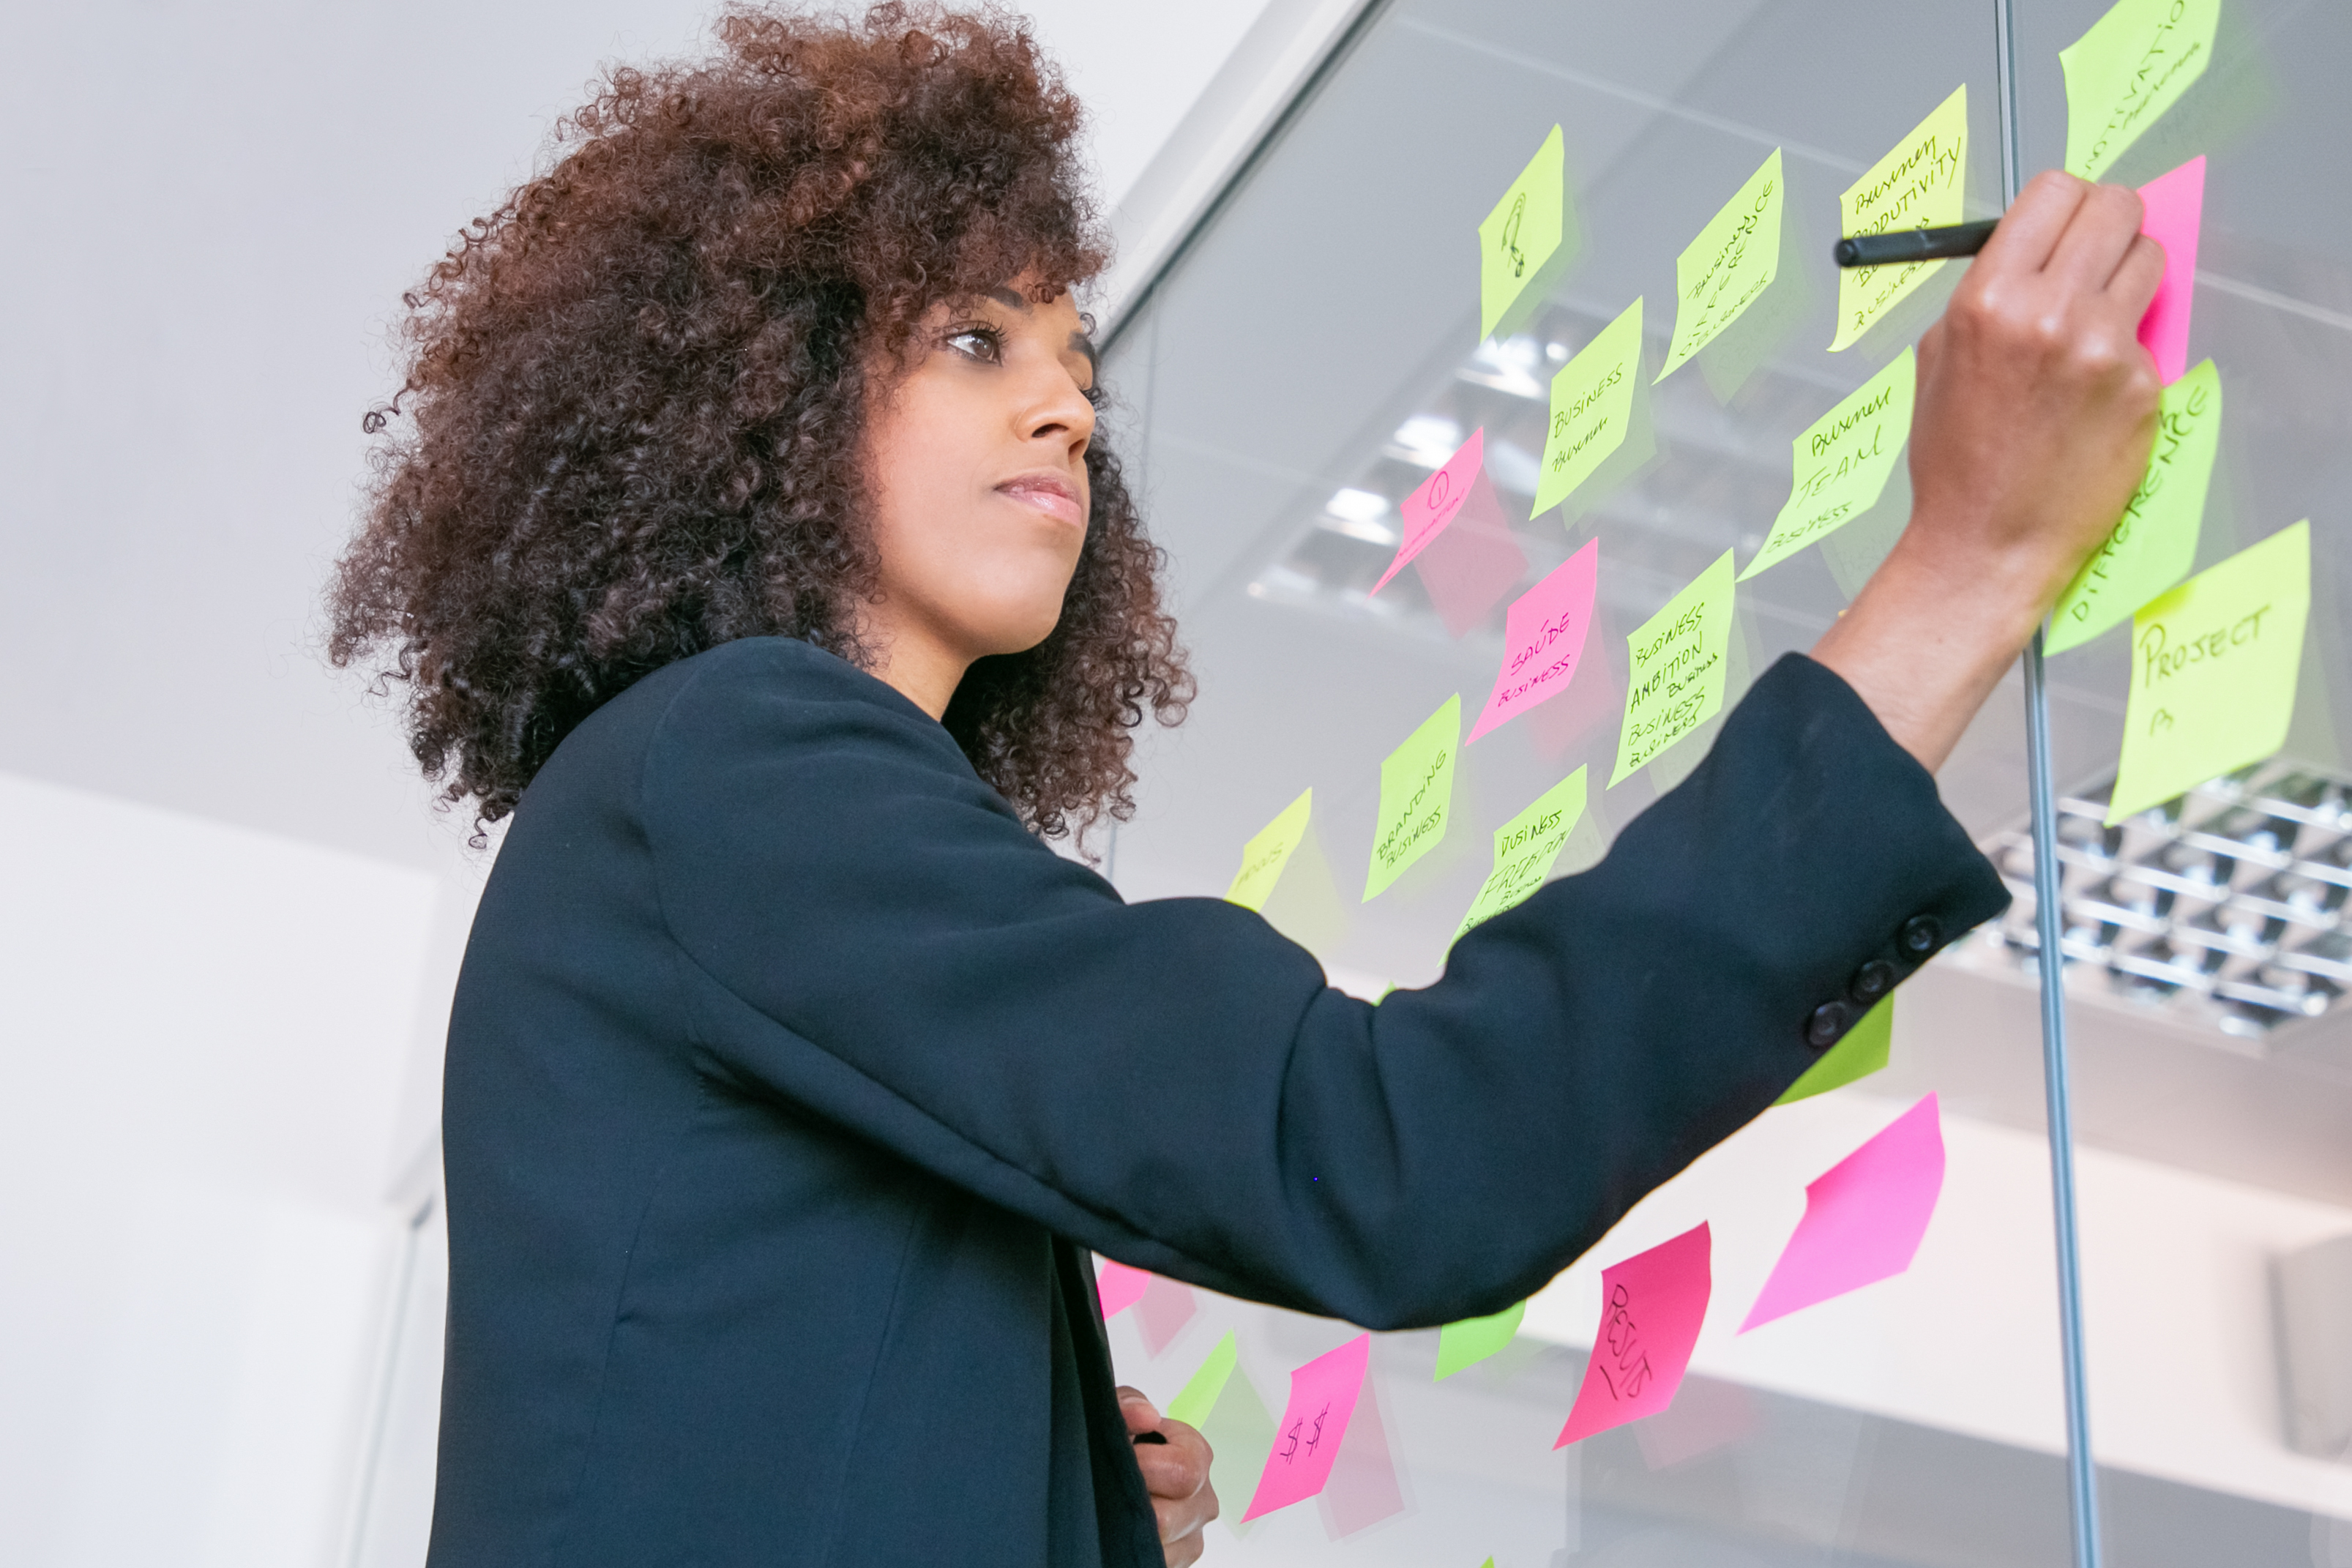 successful-pretty-businesswoman-writing-on-sticker-with-marker-thoughtful-confident-curly-female-manager-sharing-idea-for-project-and-making-note-brainstorming-business-and-training-c